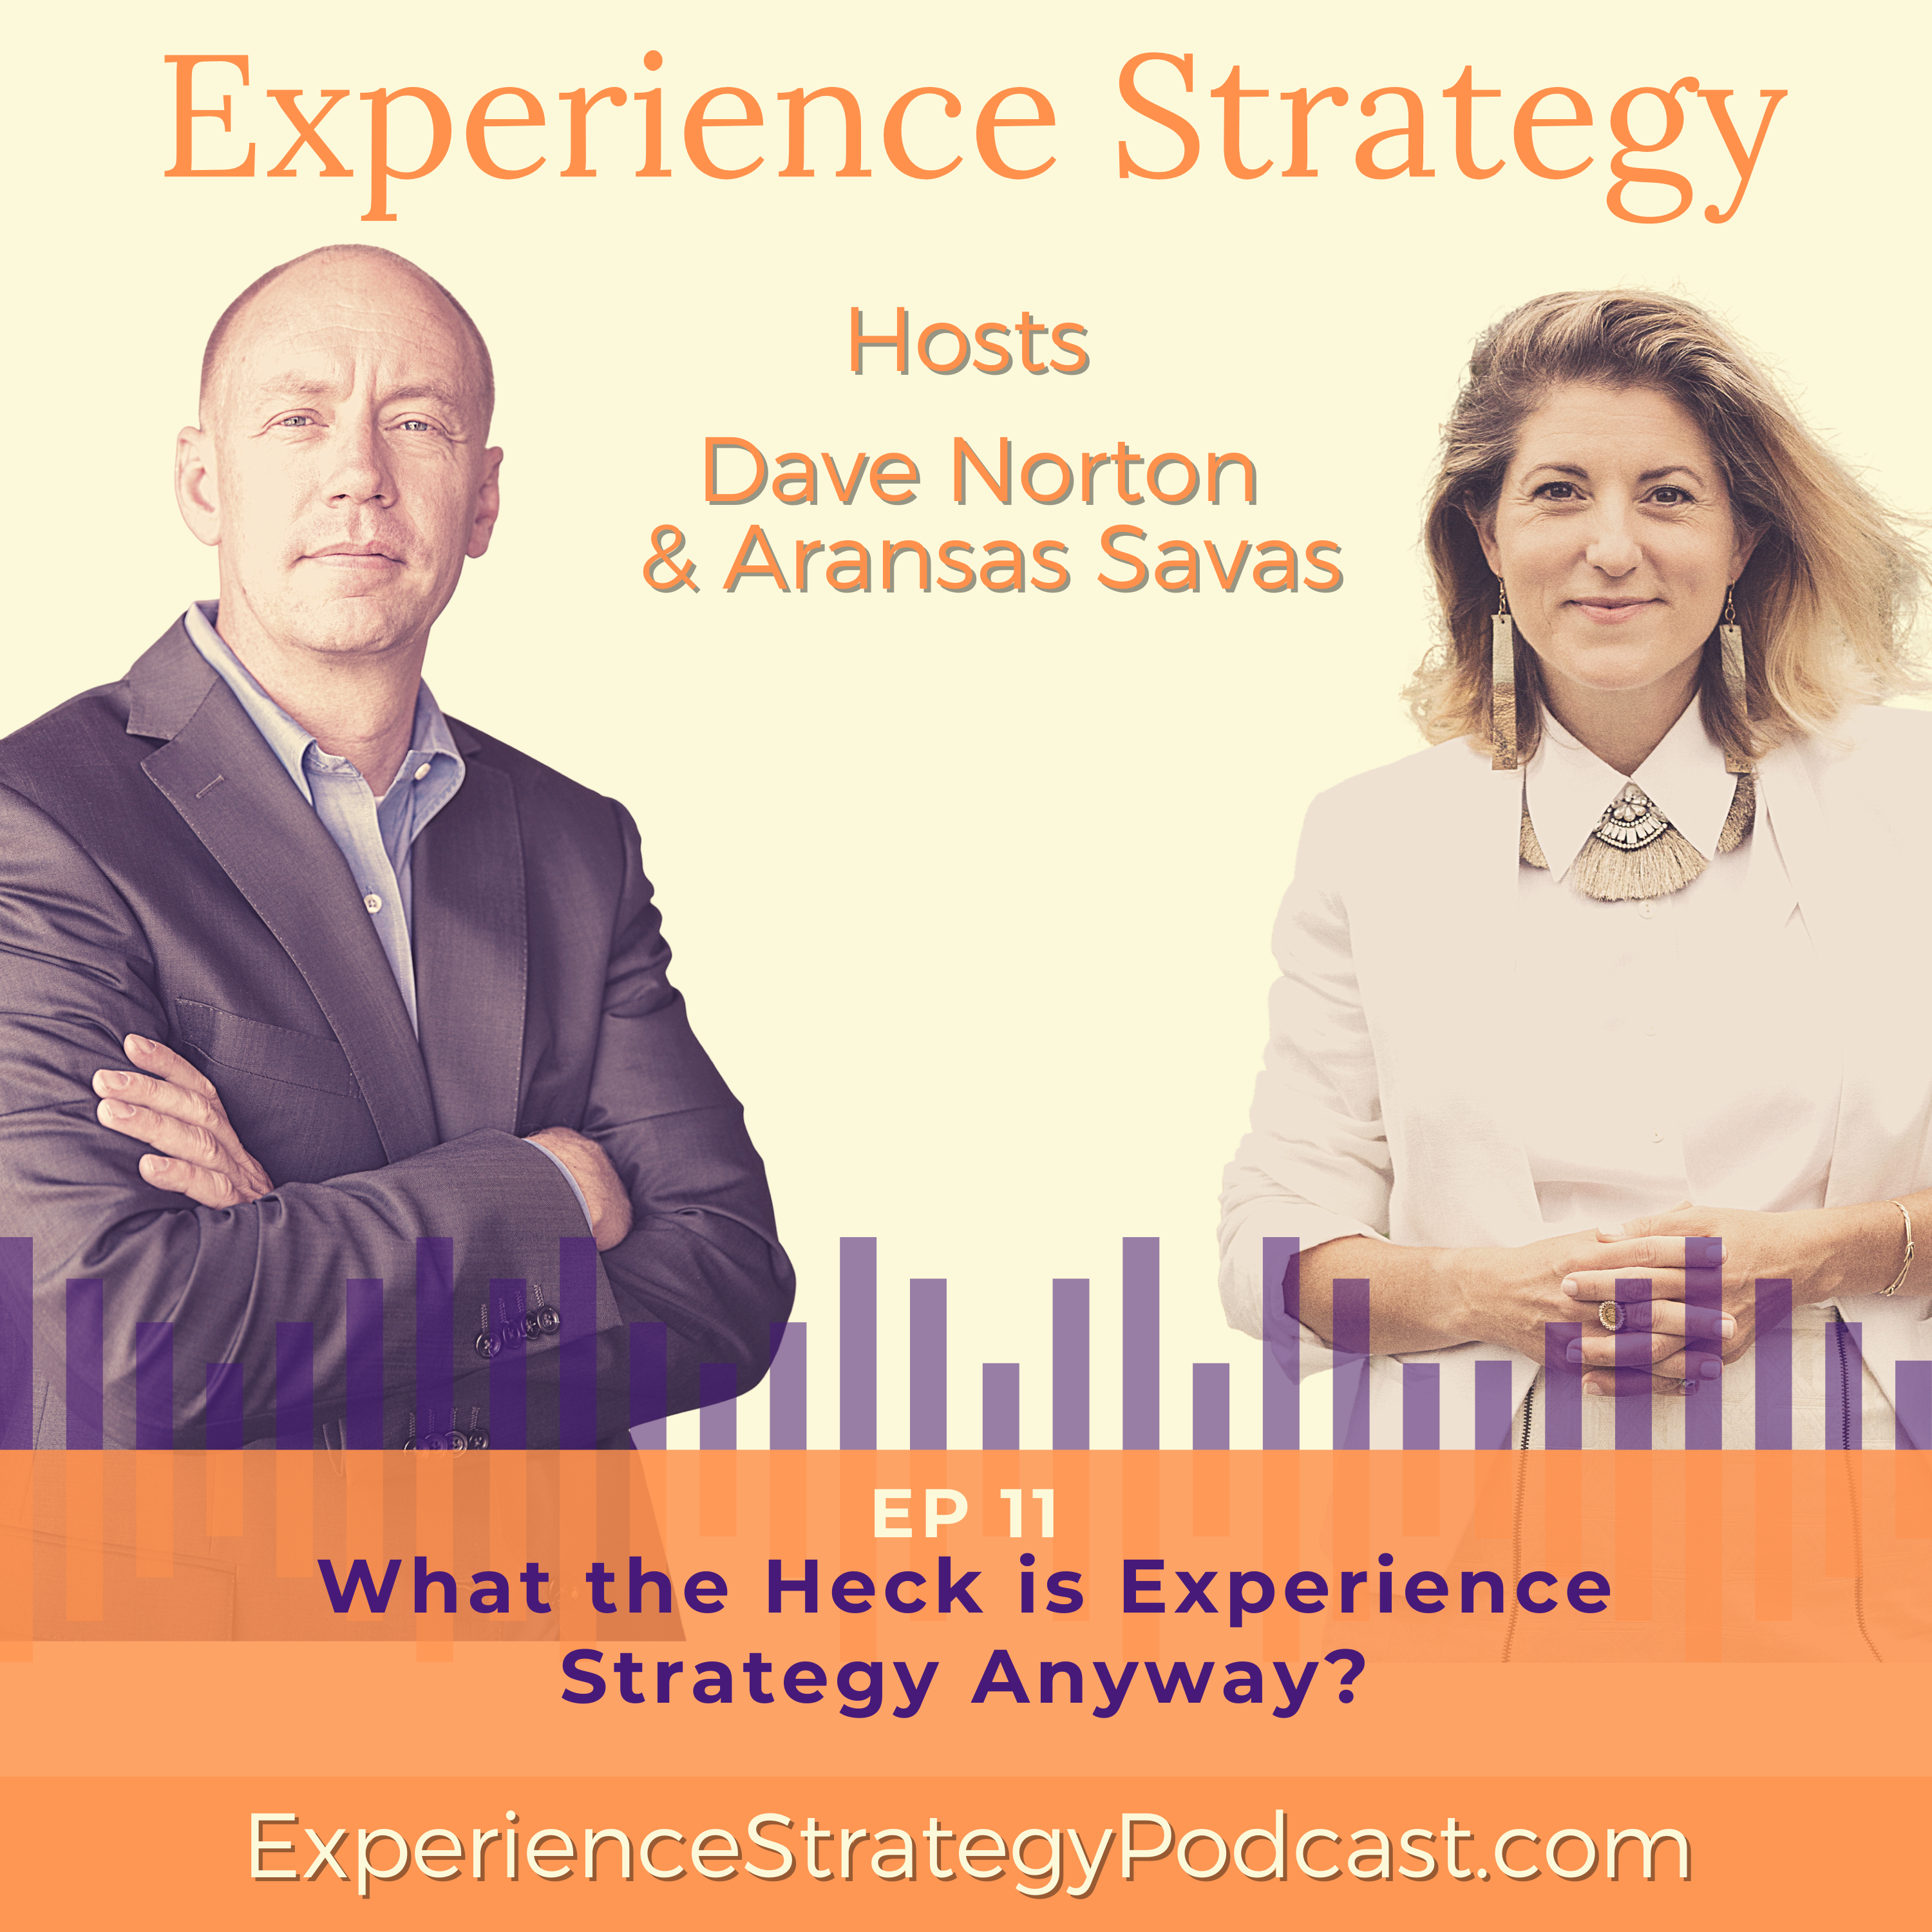 What the Heck is Experience Strategy Anyway?